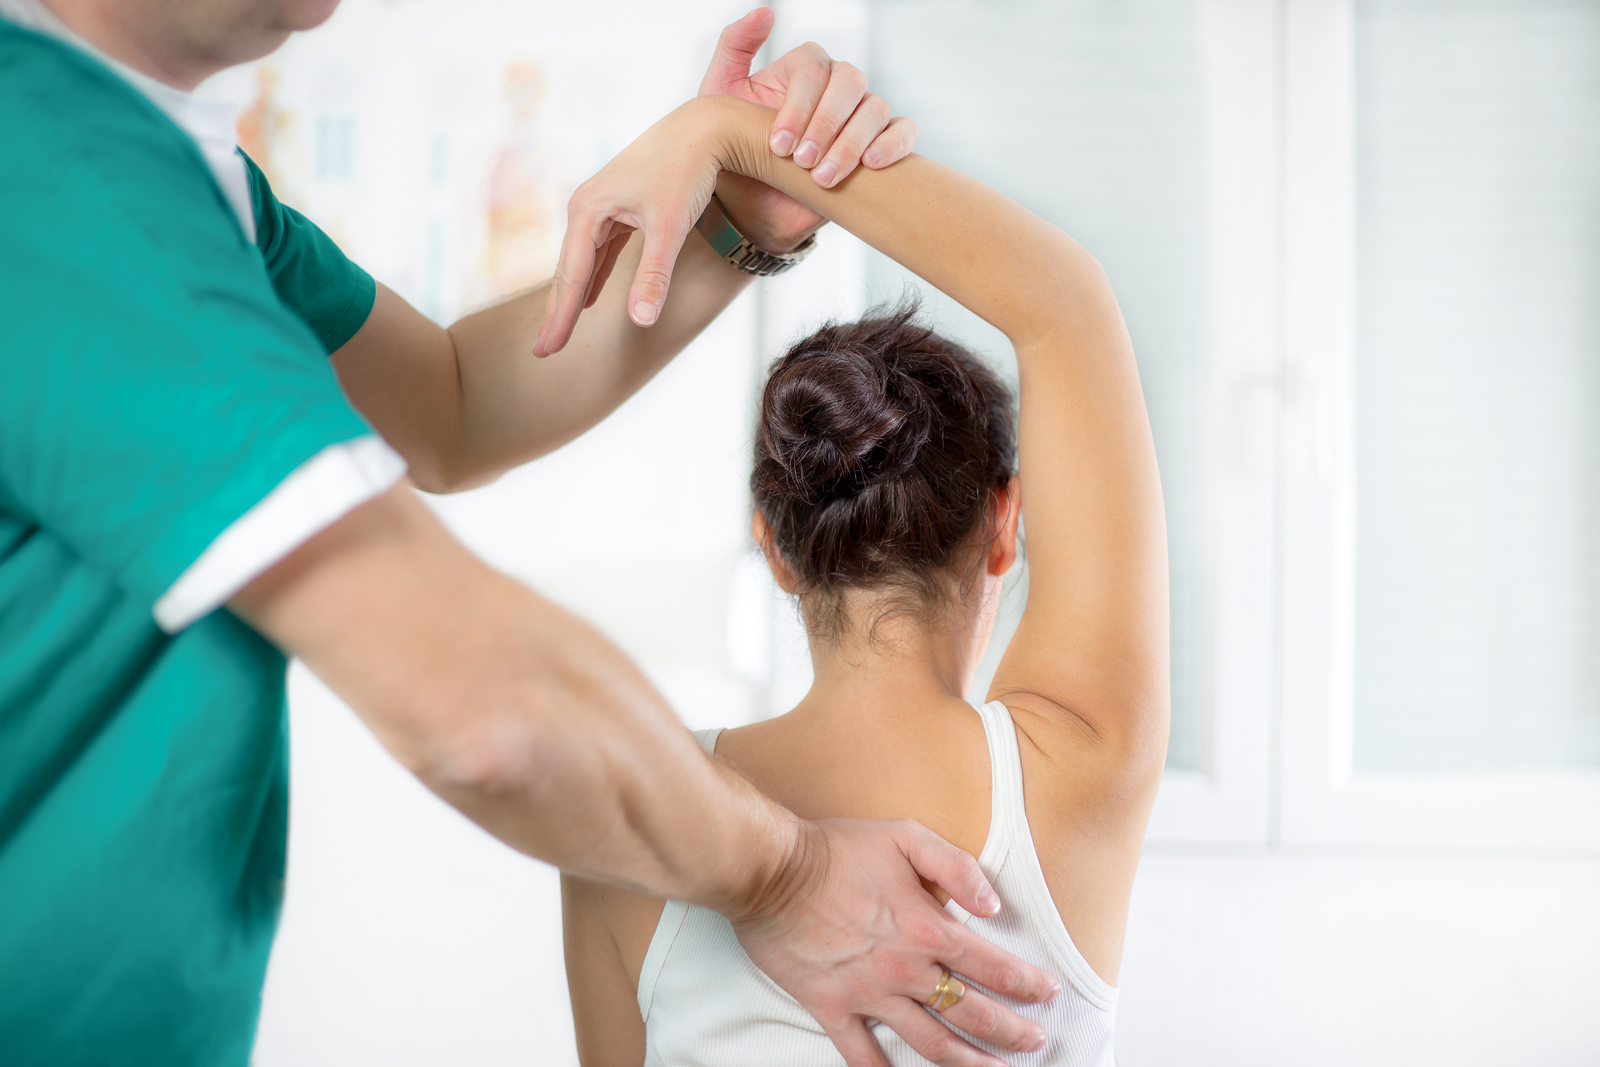 Are you looking for natural pain relief and wellness care? Learn about chiropractic care from our chiropractors in Edmonds. Call today for an appointment!